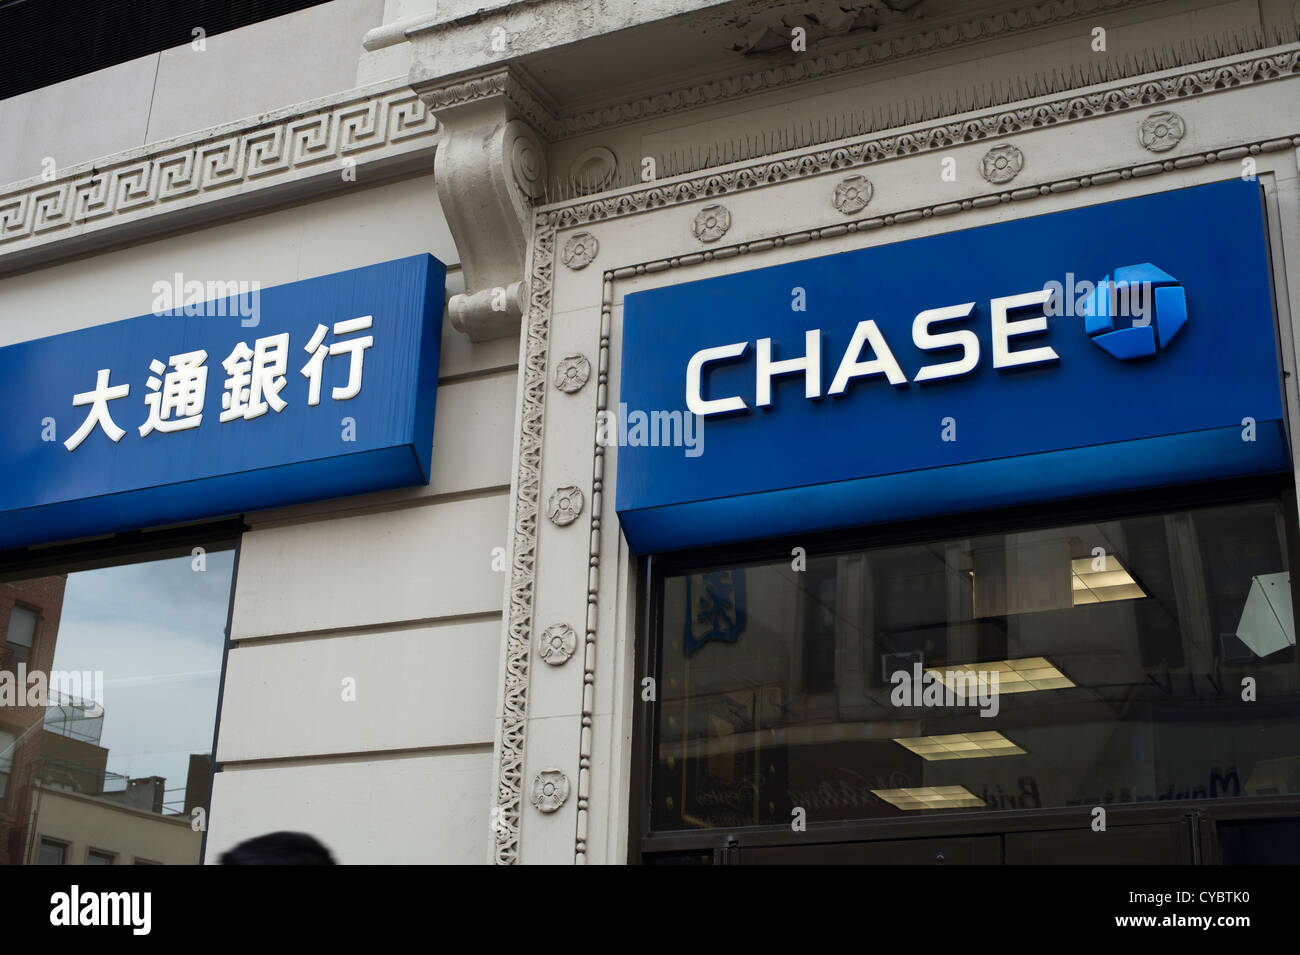 a jpmorgan chase bank branch sign seen in chinese and english in